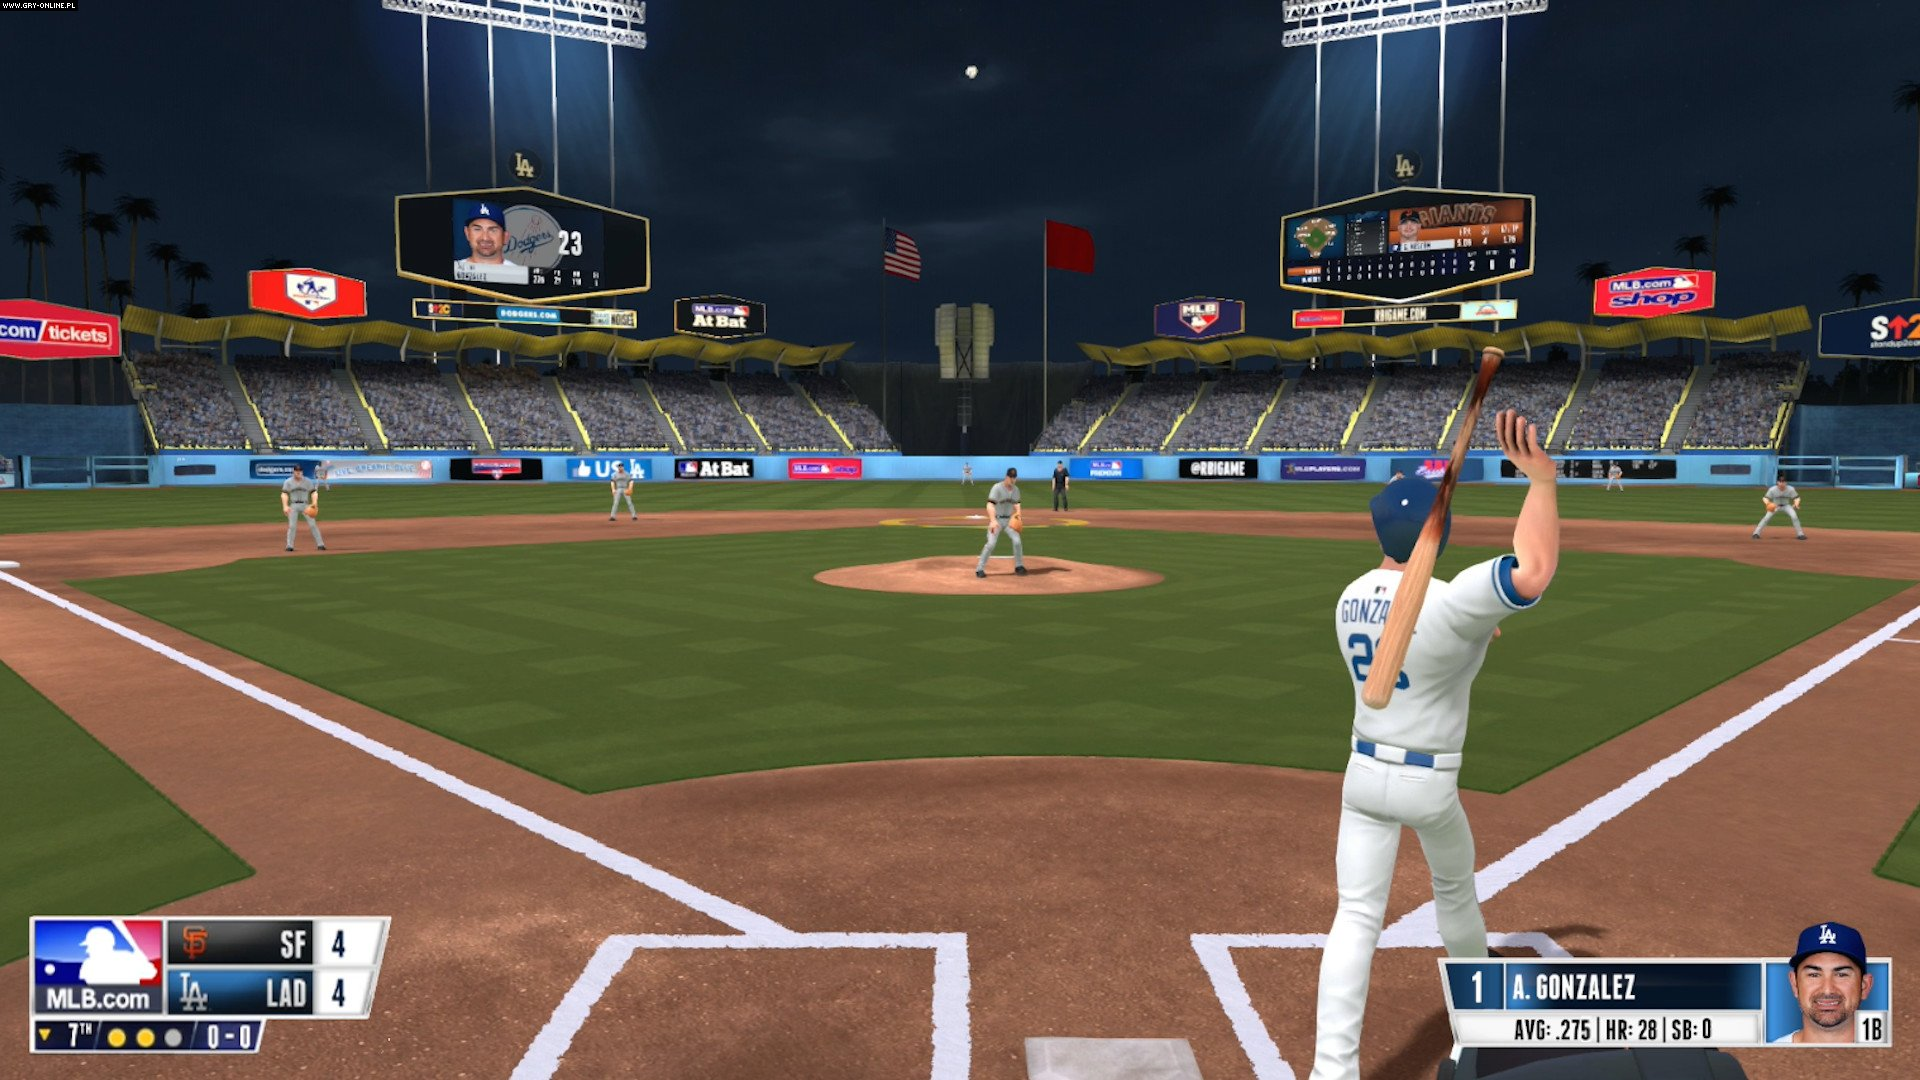 R.B.I. Baseball 16 PC, PS4, XONE, iOS, AND Games Image 10/10, Major League Baseball Advanced Media